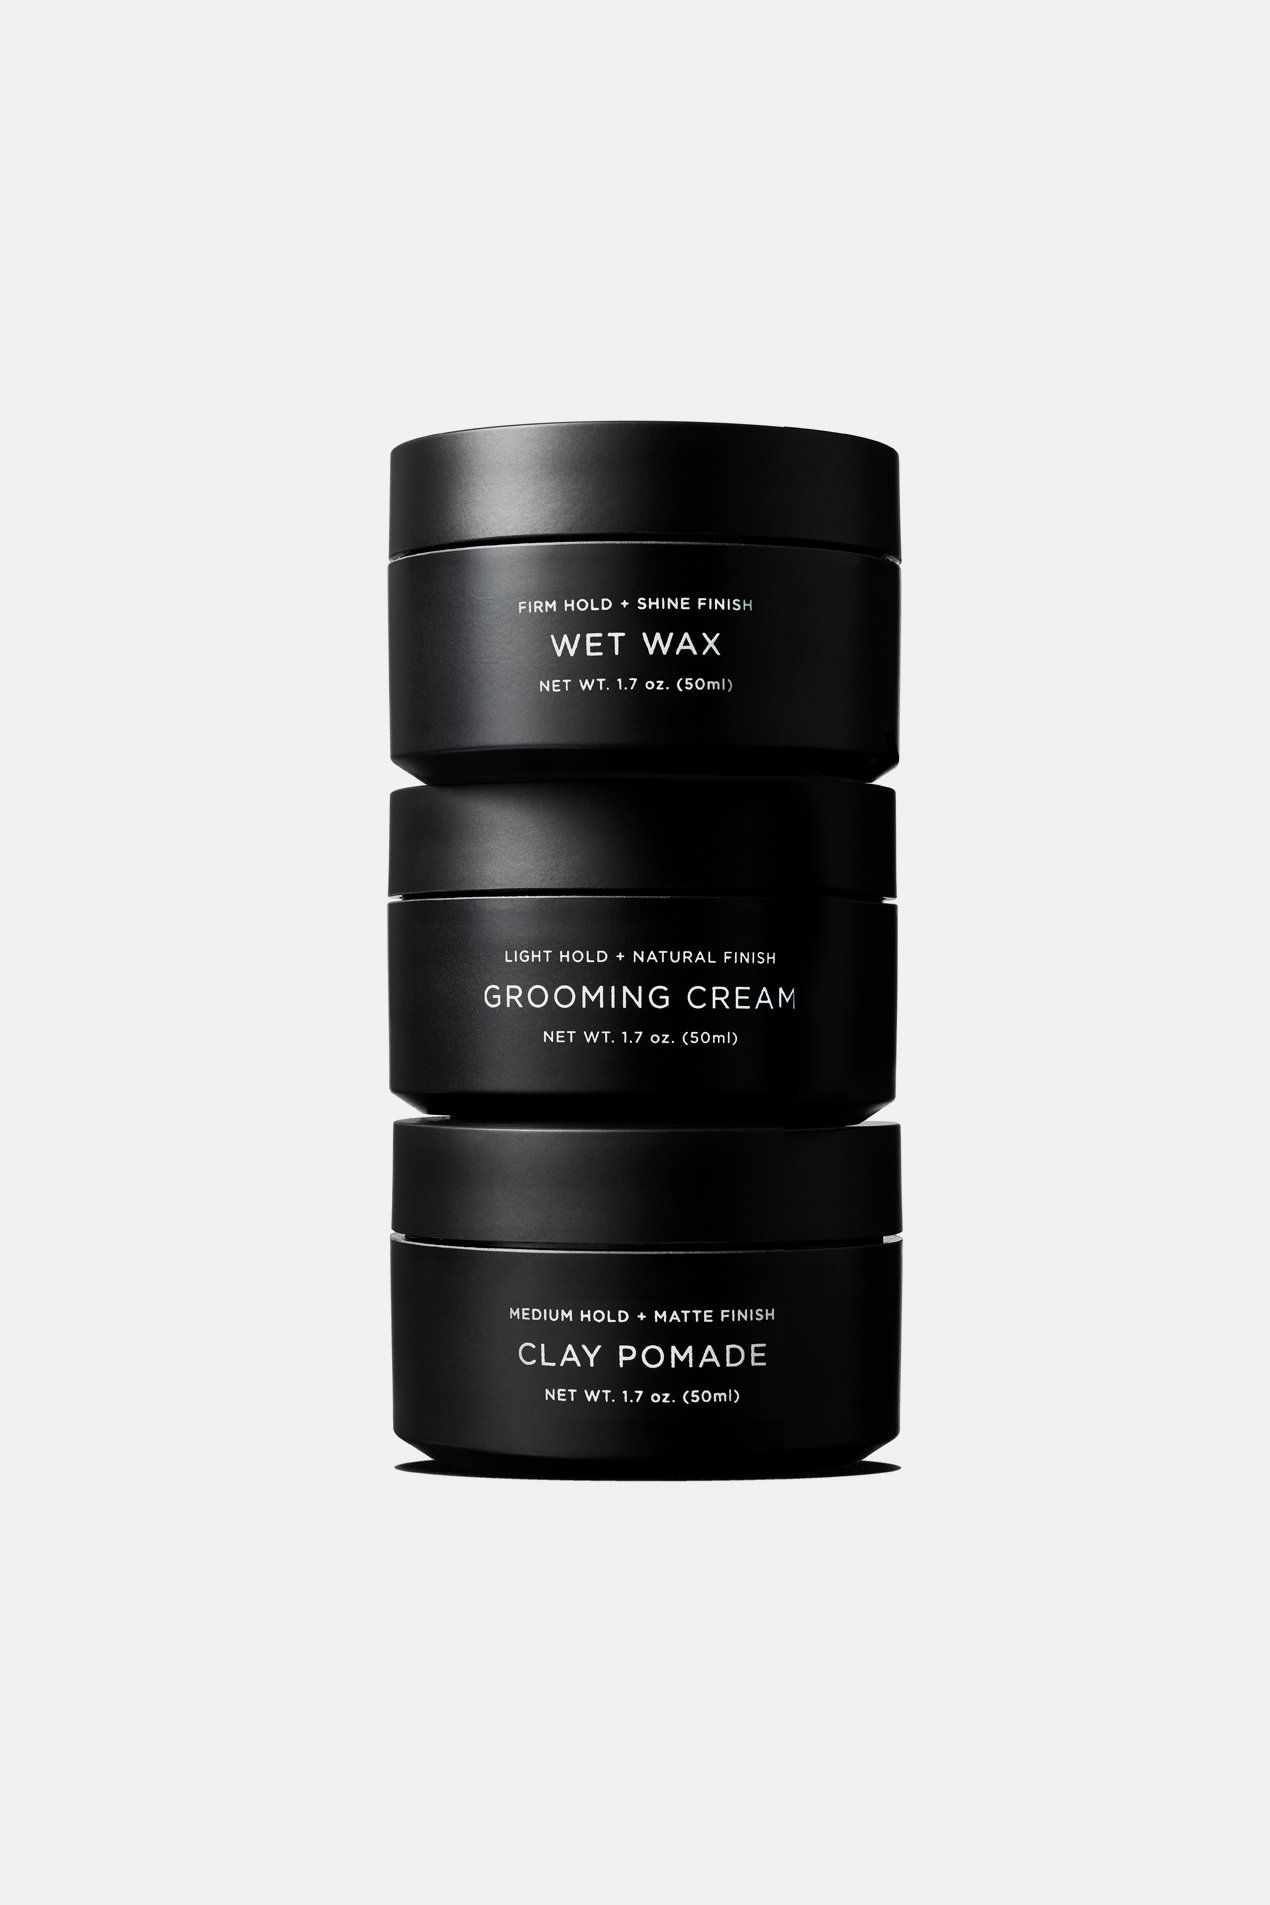 Pomade Trio One Of Each Pomade Saturdays Nyc Pomade Packaging Cosmetic Packaging Design Cosmetic Packaging